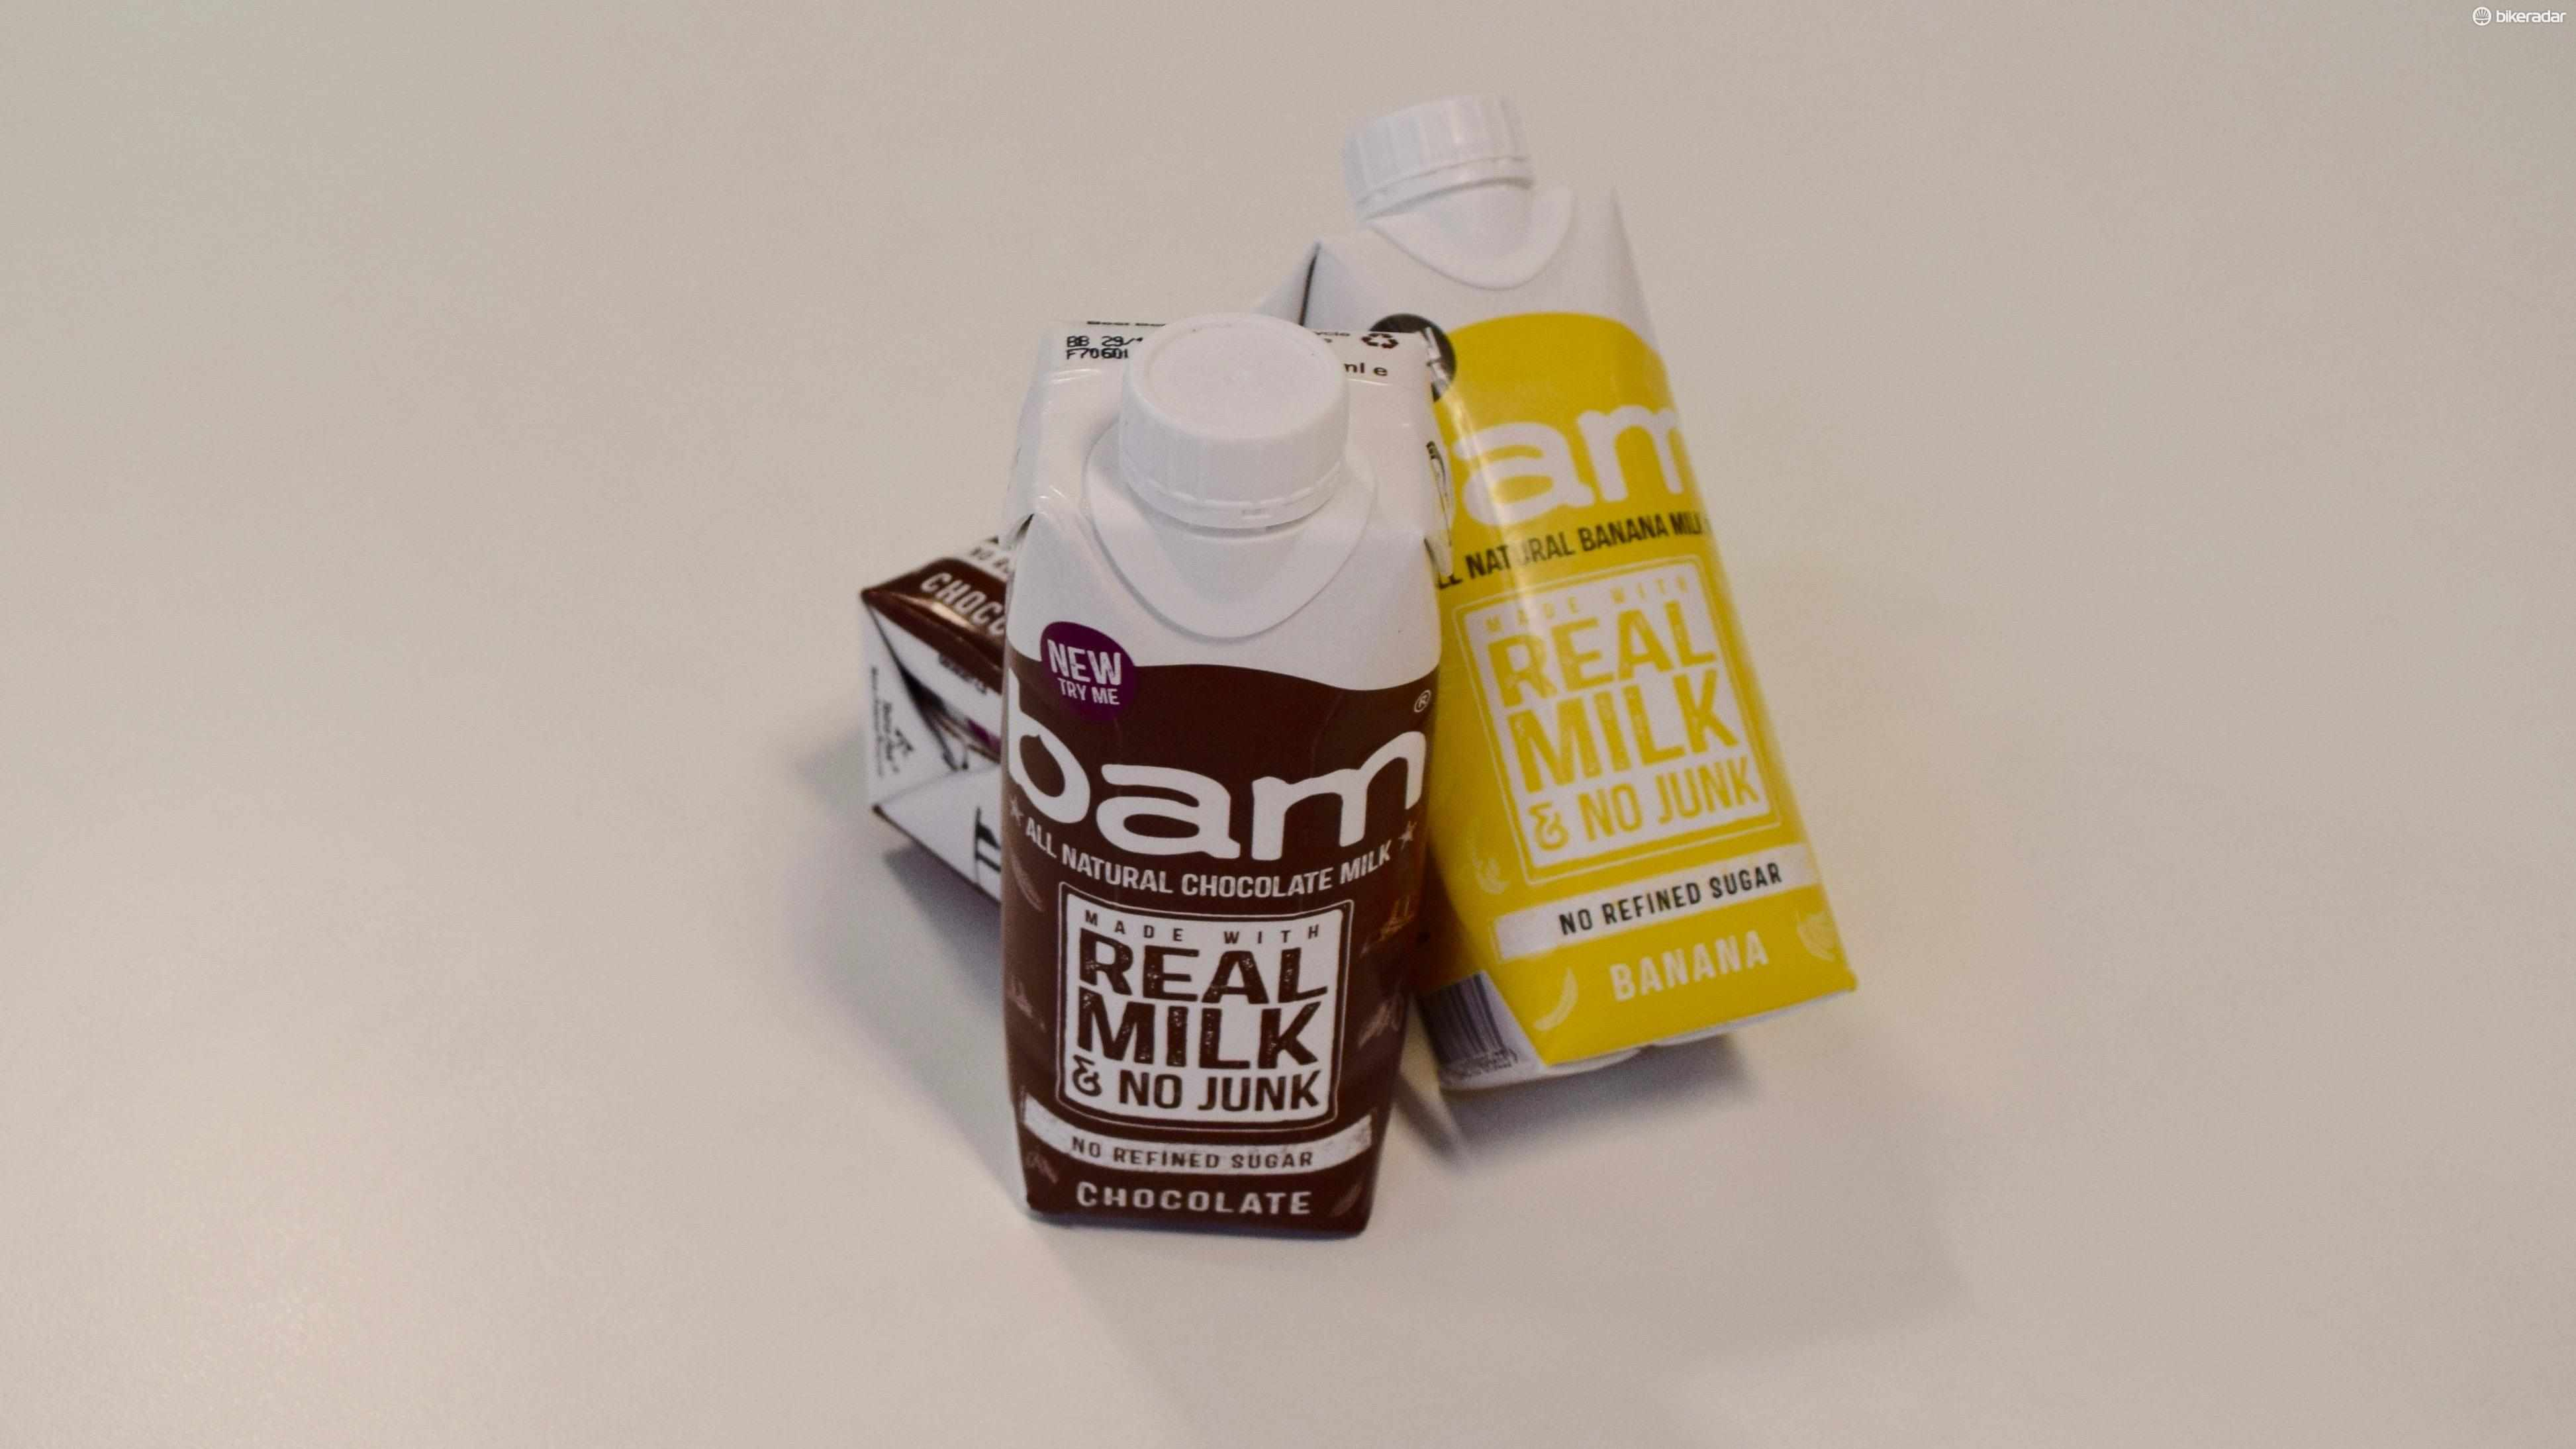 Bam's All Natural Milk Drink comes in two flavours, in 330ml cartons